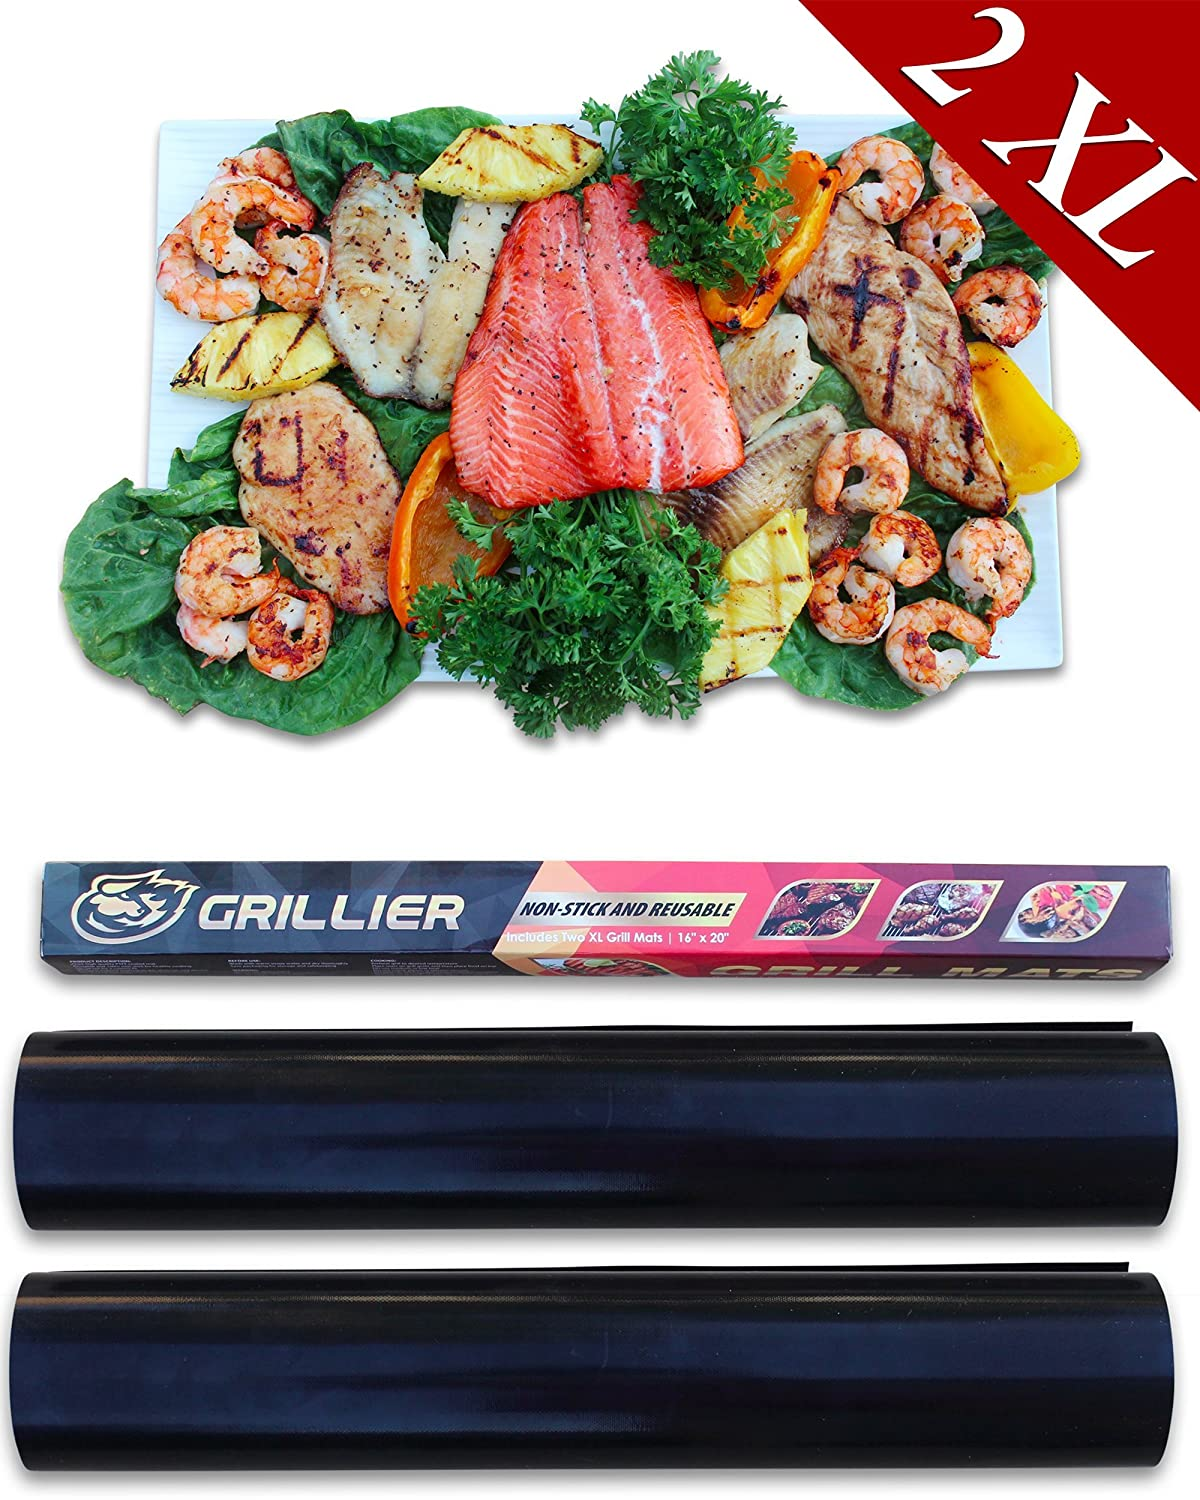 Grillier BBQ Grill Mat - Set of 2 XL Mats 20x16 Best Healthy Non-Stick Baking Sheet - Ultimate Outdoor and Oven Cooking Liner - For Charcoal, Gas and Electric Barbecue Grills - Launch Offer